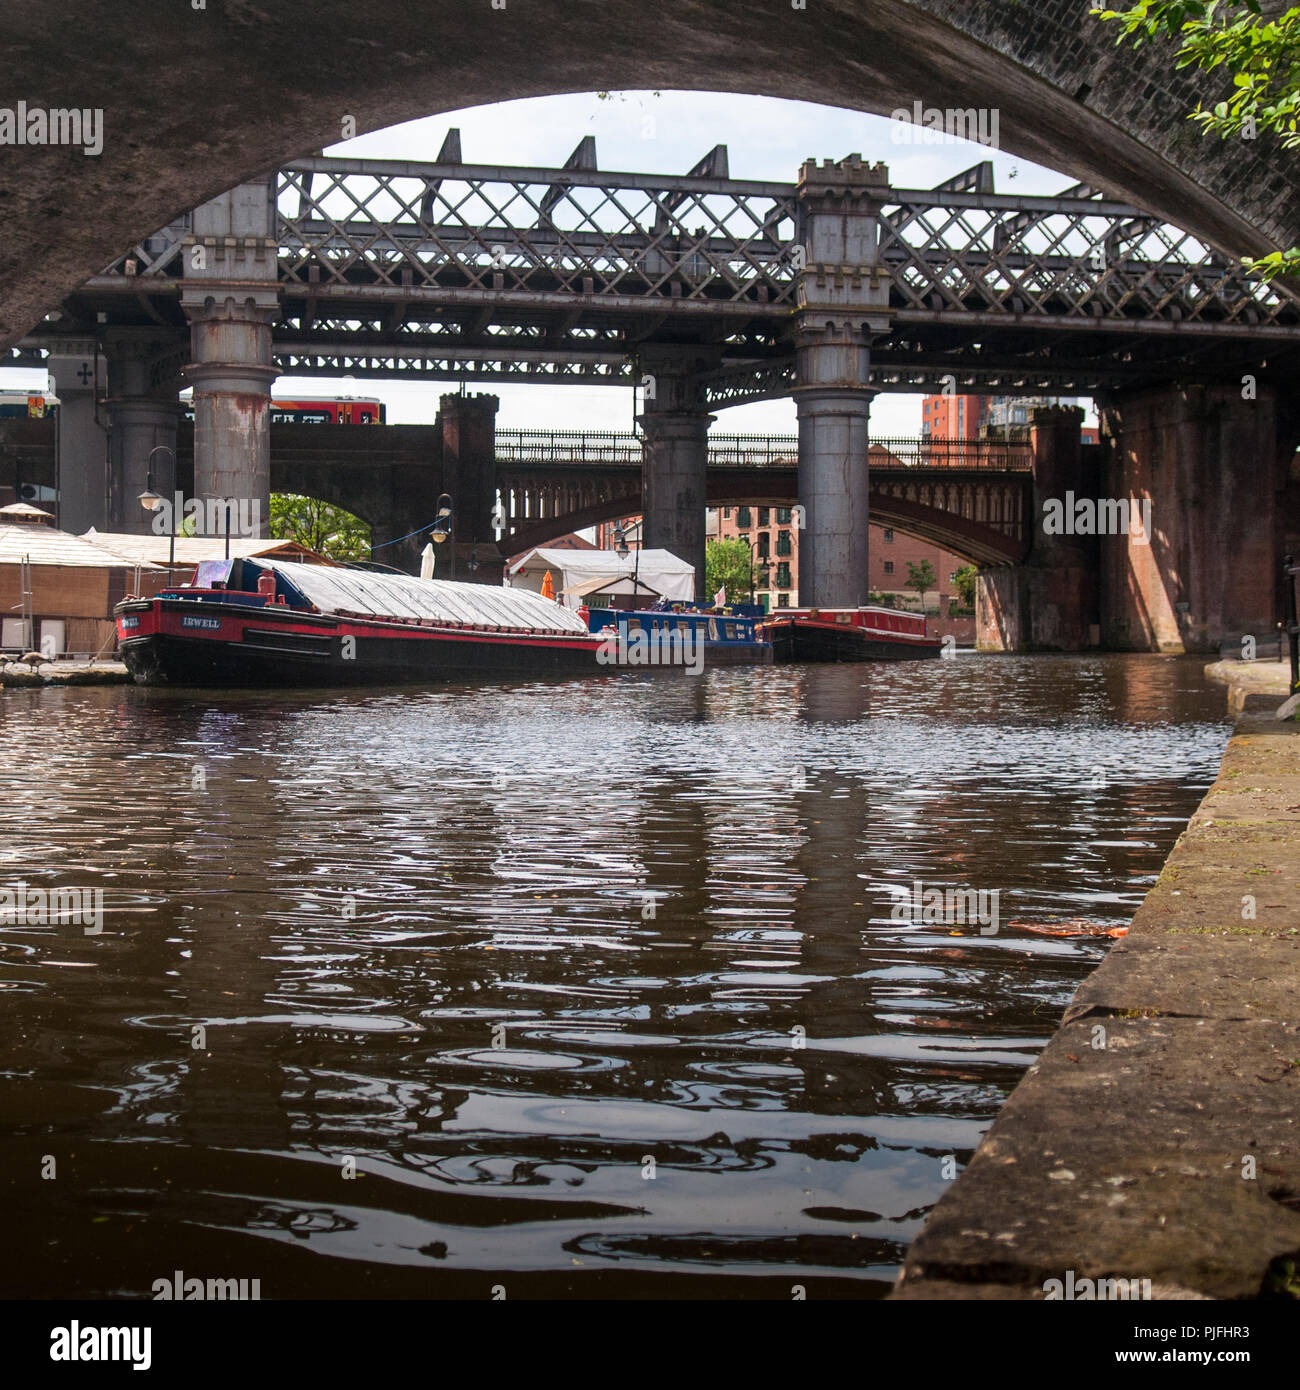 Manchester, England, UK - May 21, 2011: An East Midlands Trains passenger train crosses Castlefield basin on the Bridgewater Canal in Manchester. - Stock Image